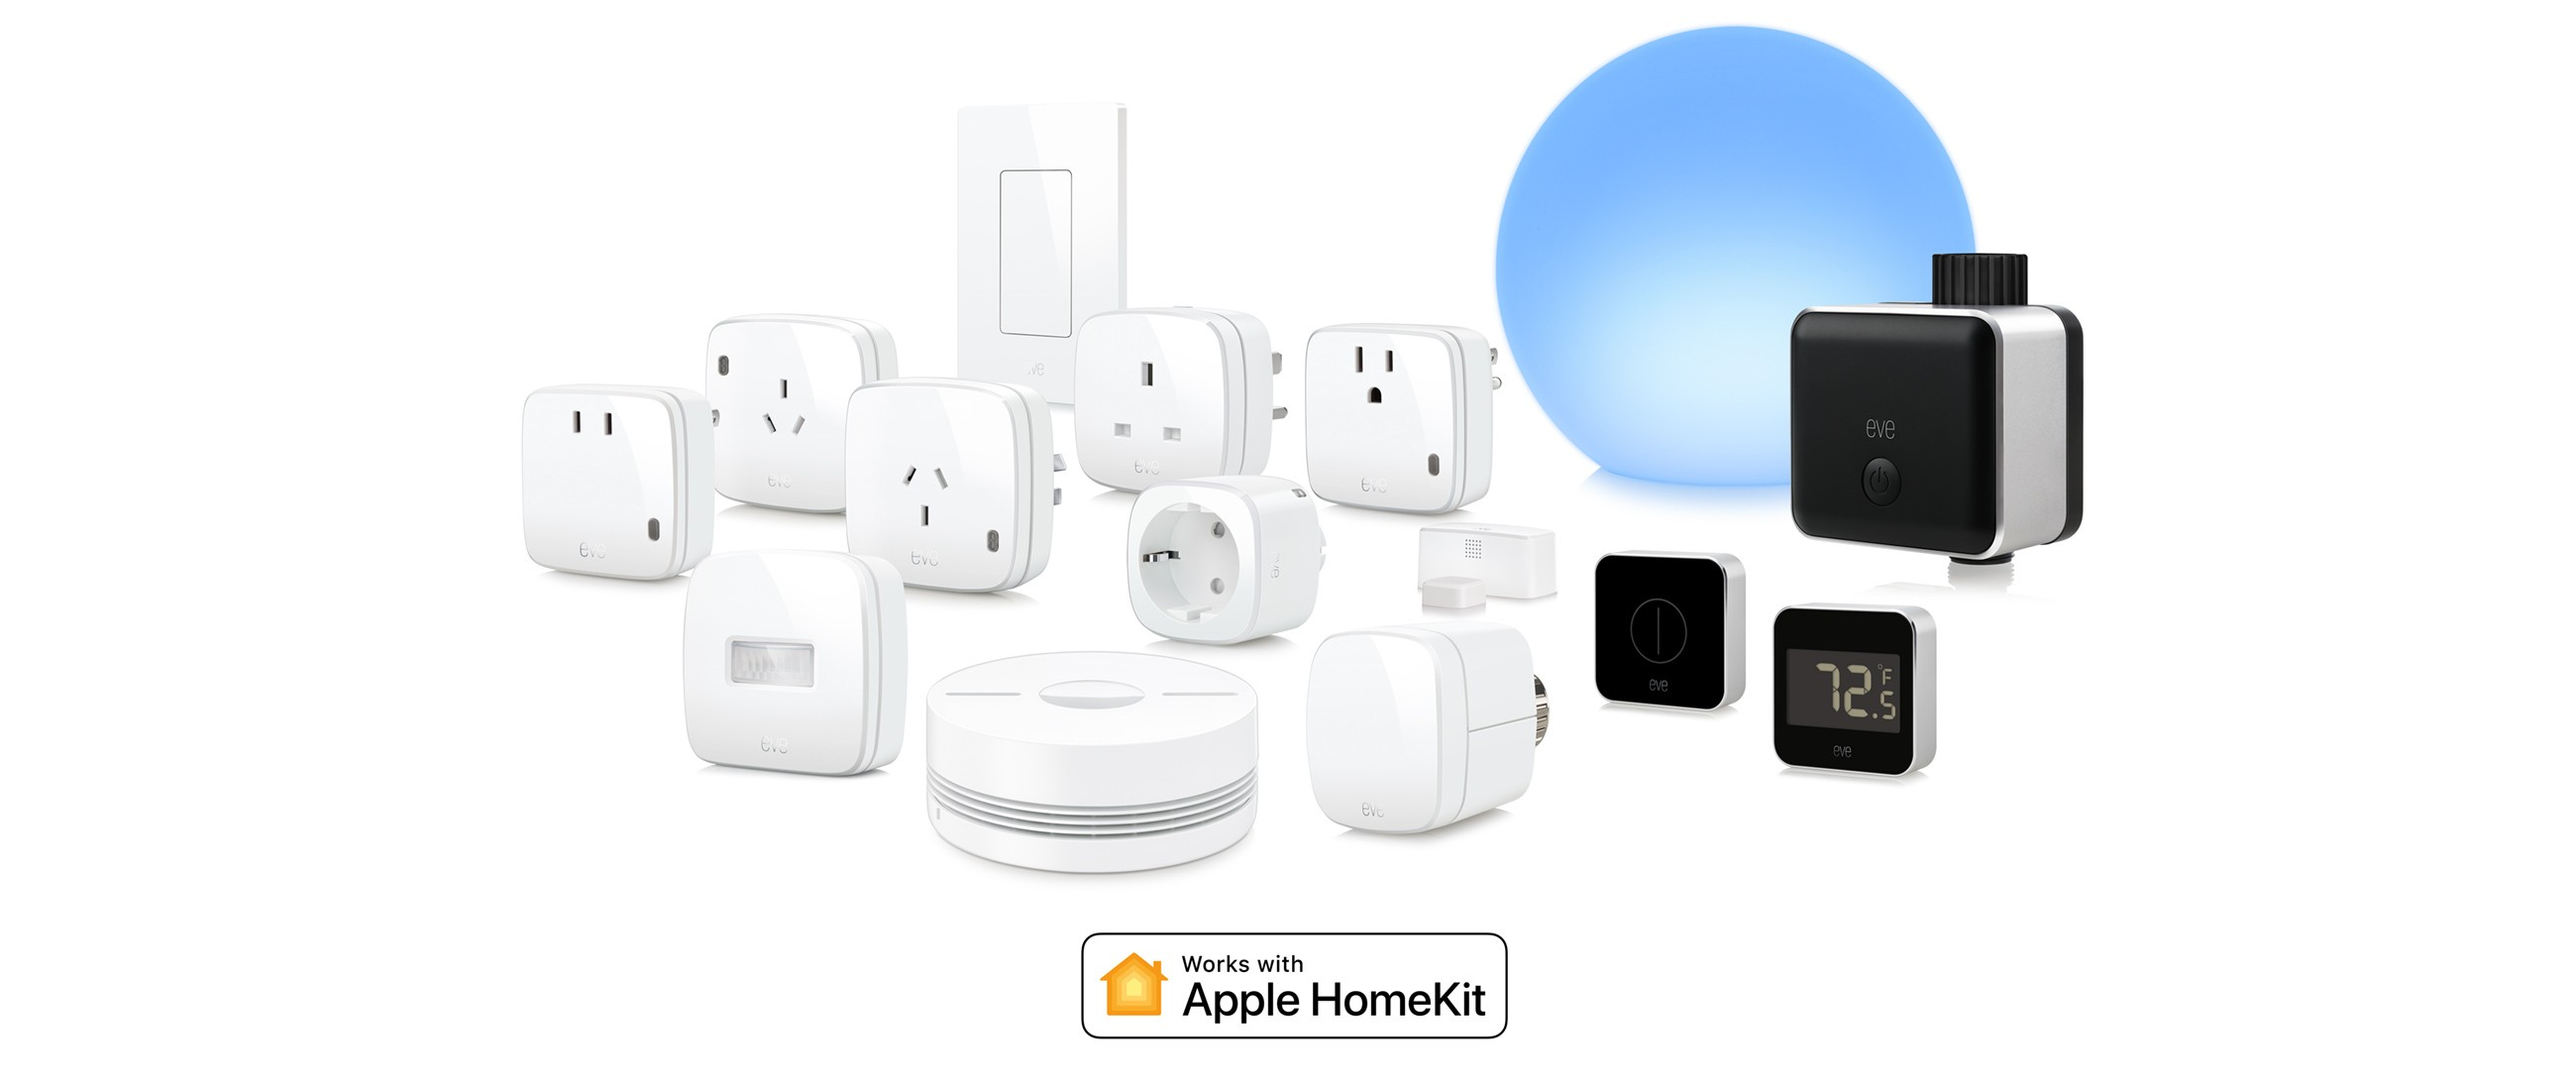 Homekit Compatible Hub Control Your Home With Homepod Evehome